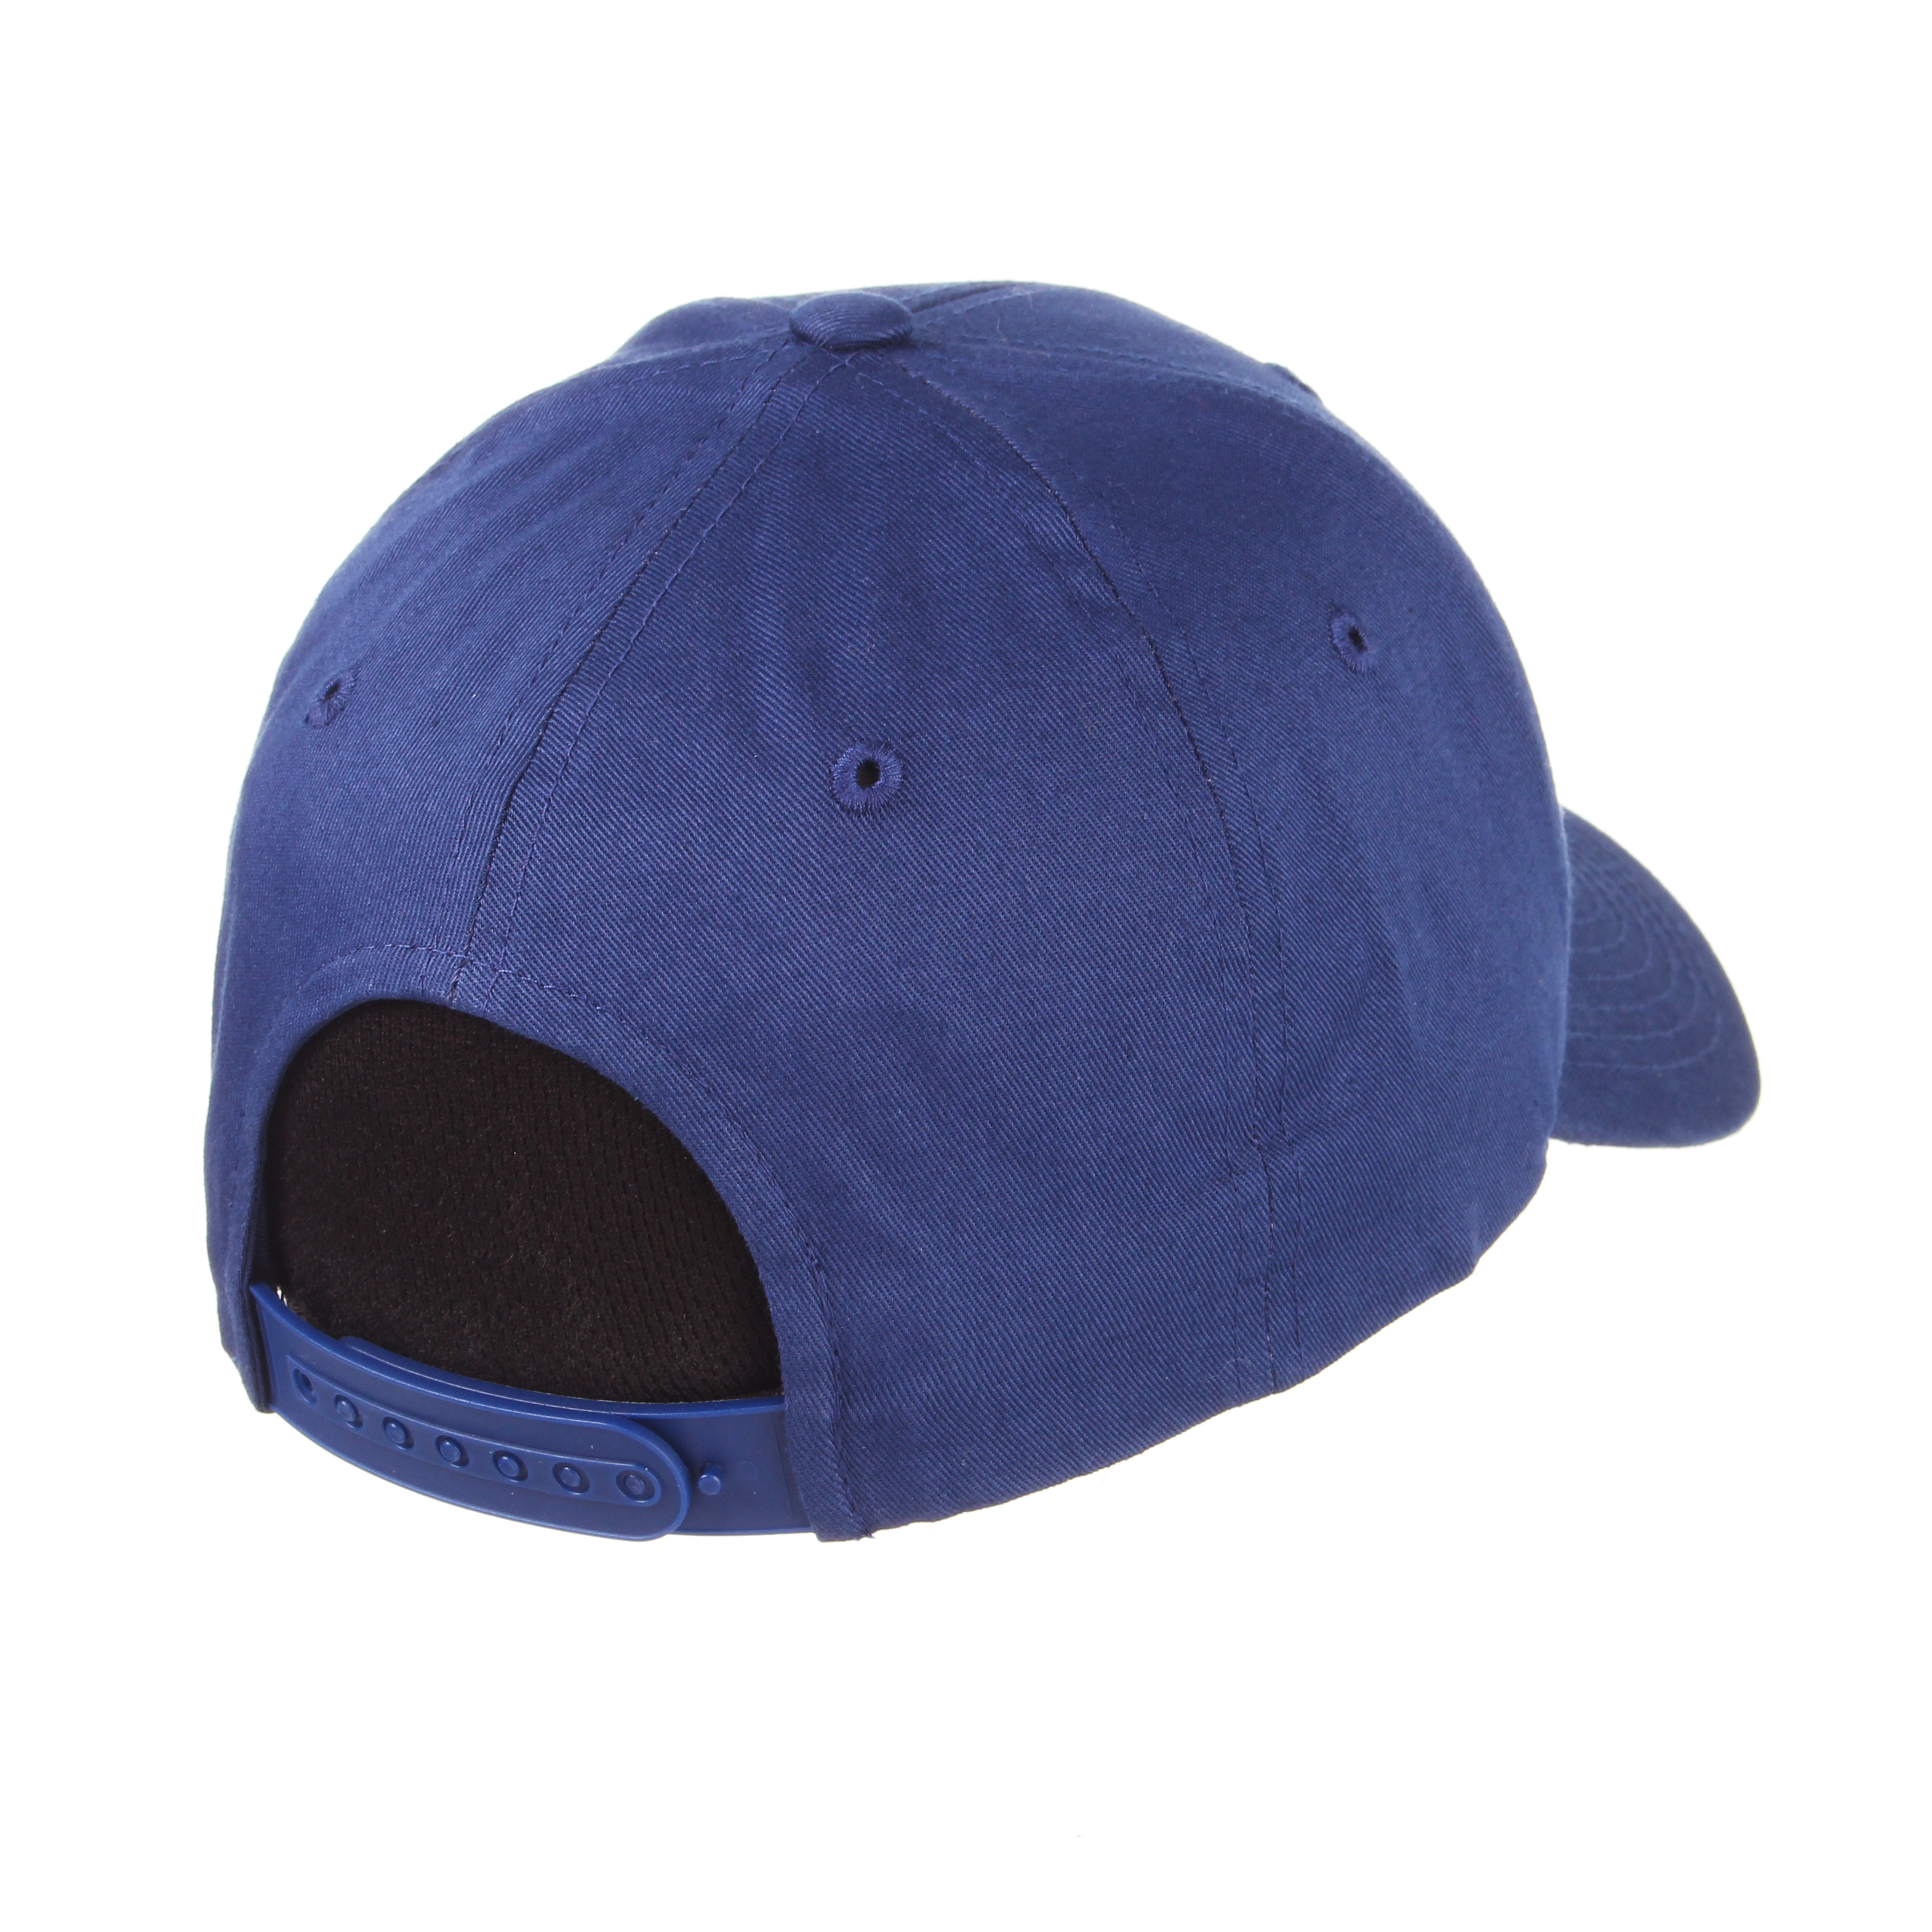 Spalding University Sport Standard (Low) (SU) Royal Dark 100% Cotton Twill Adjustable hats by Zephyr